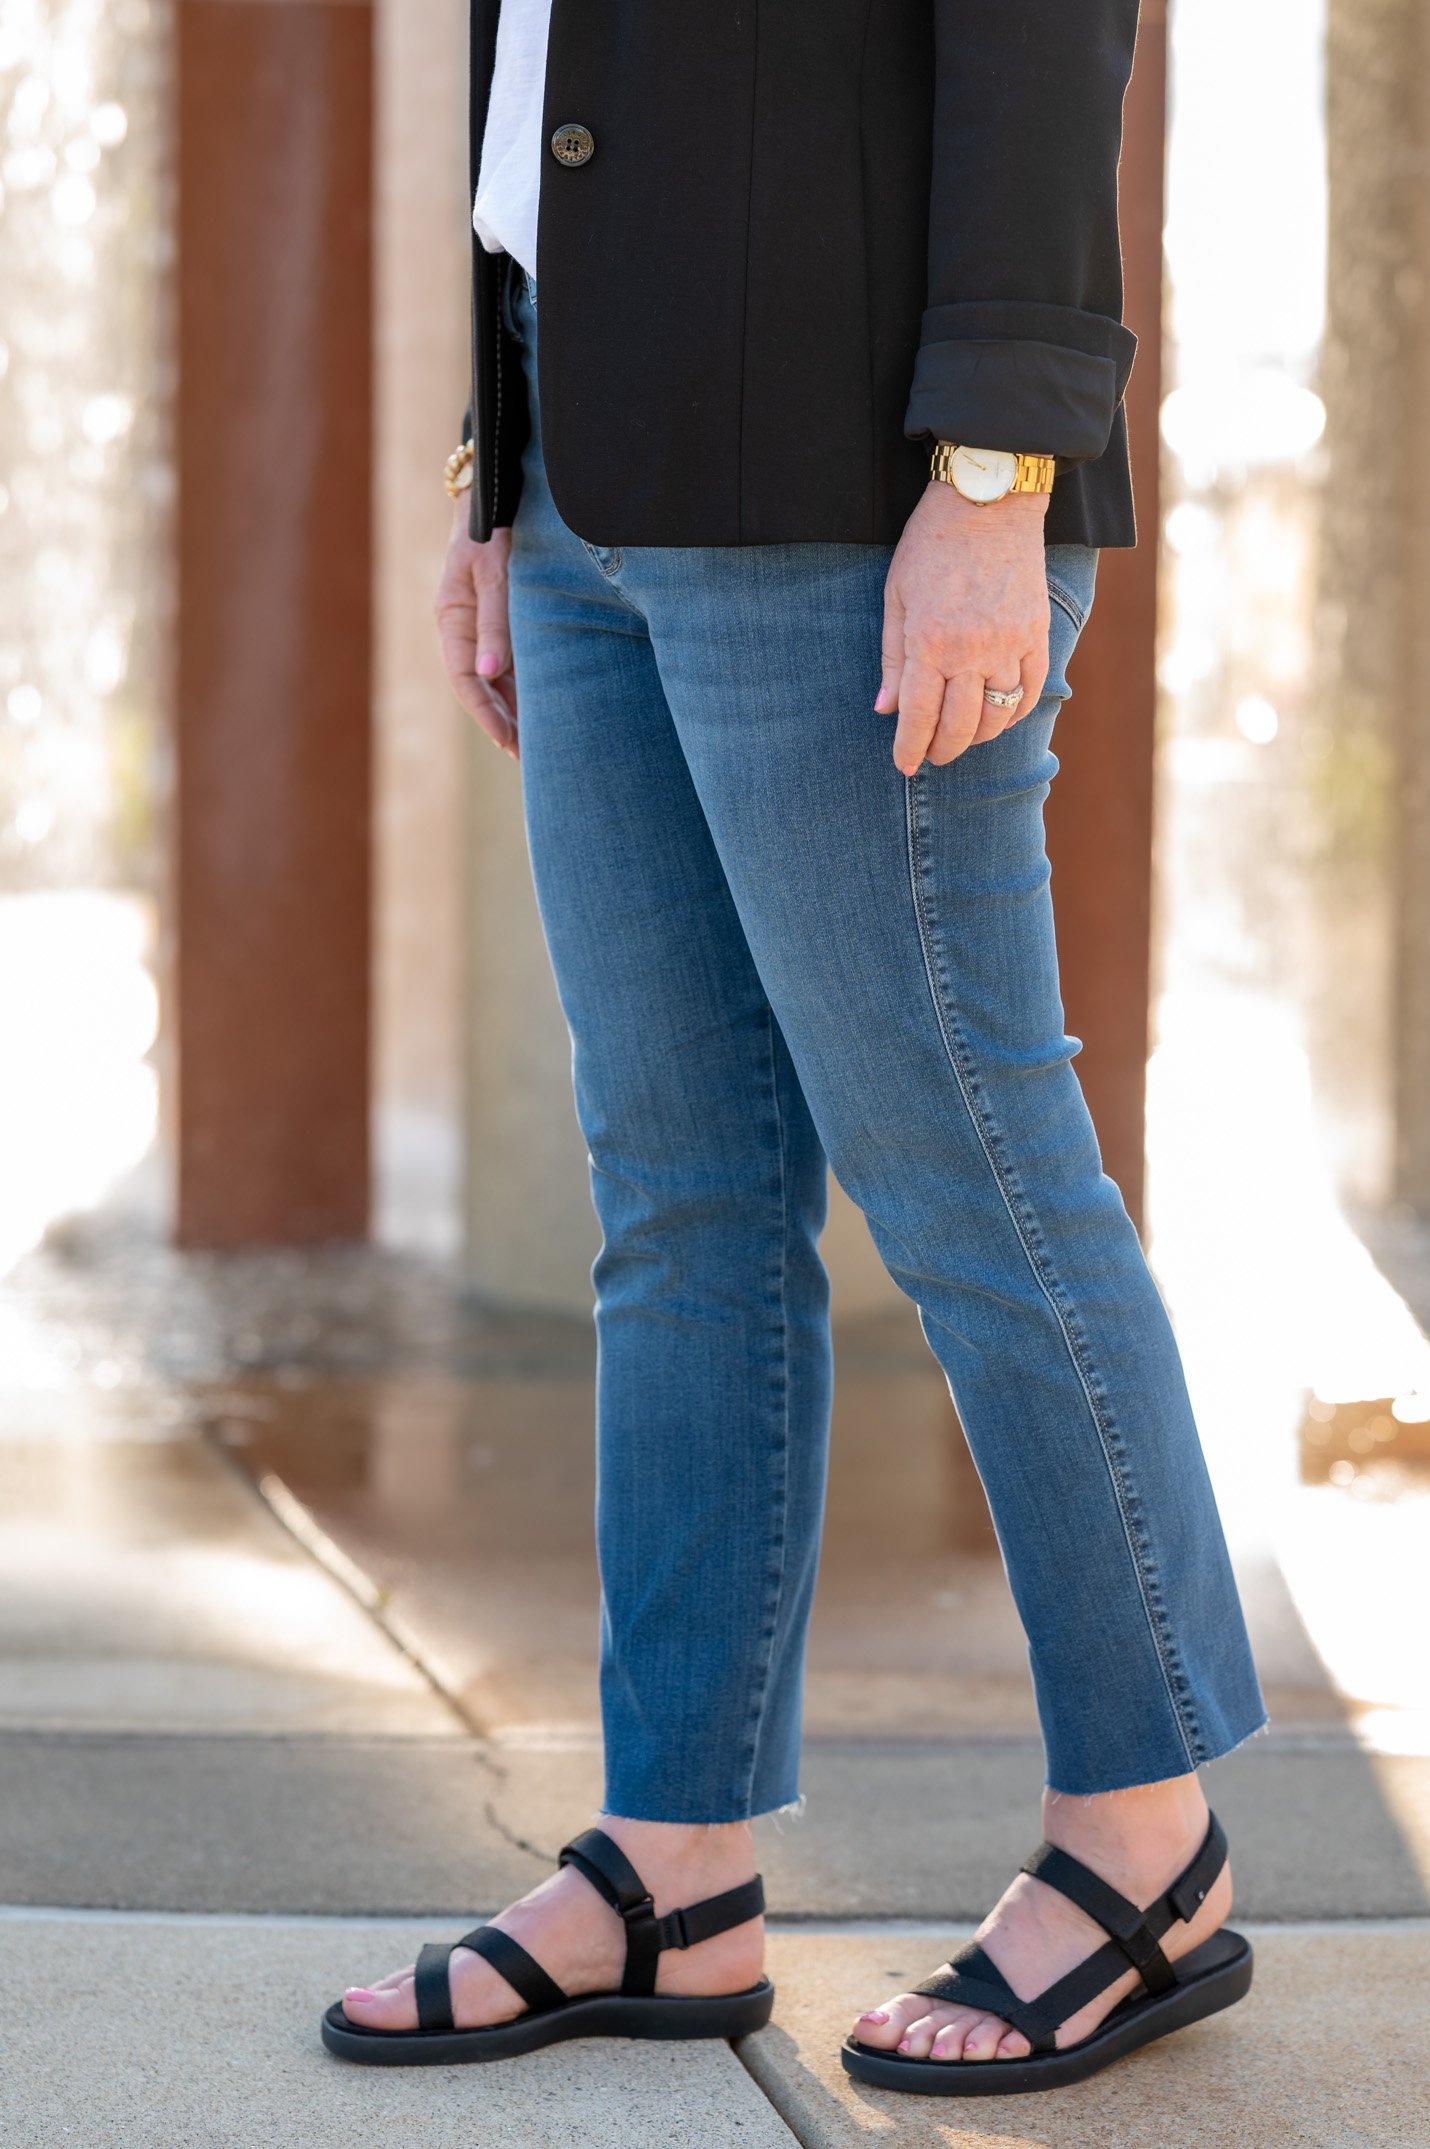 Straight Leg Jeans with Sport Sandals